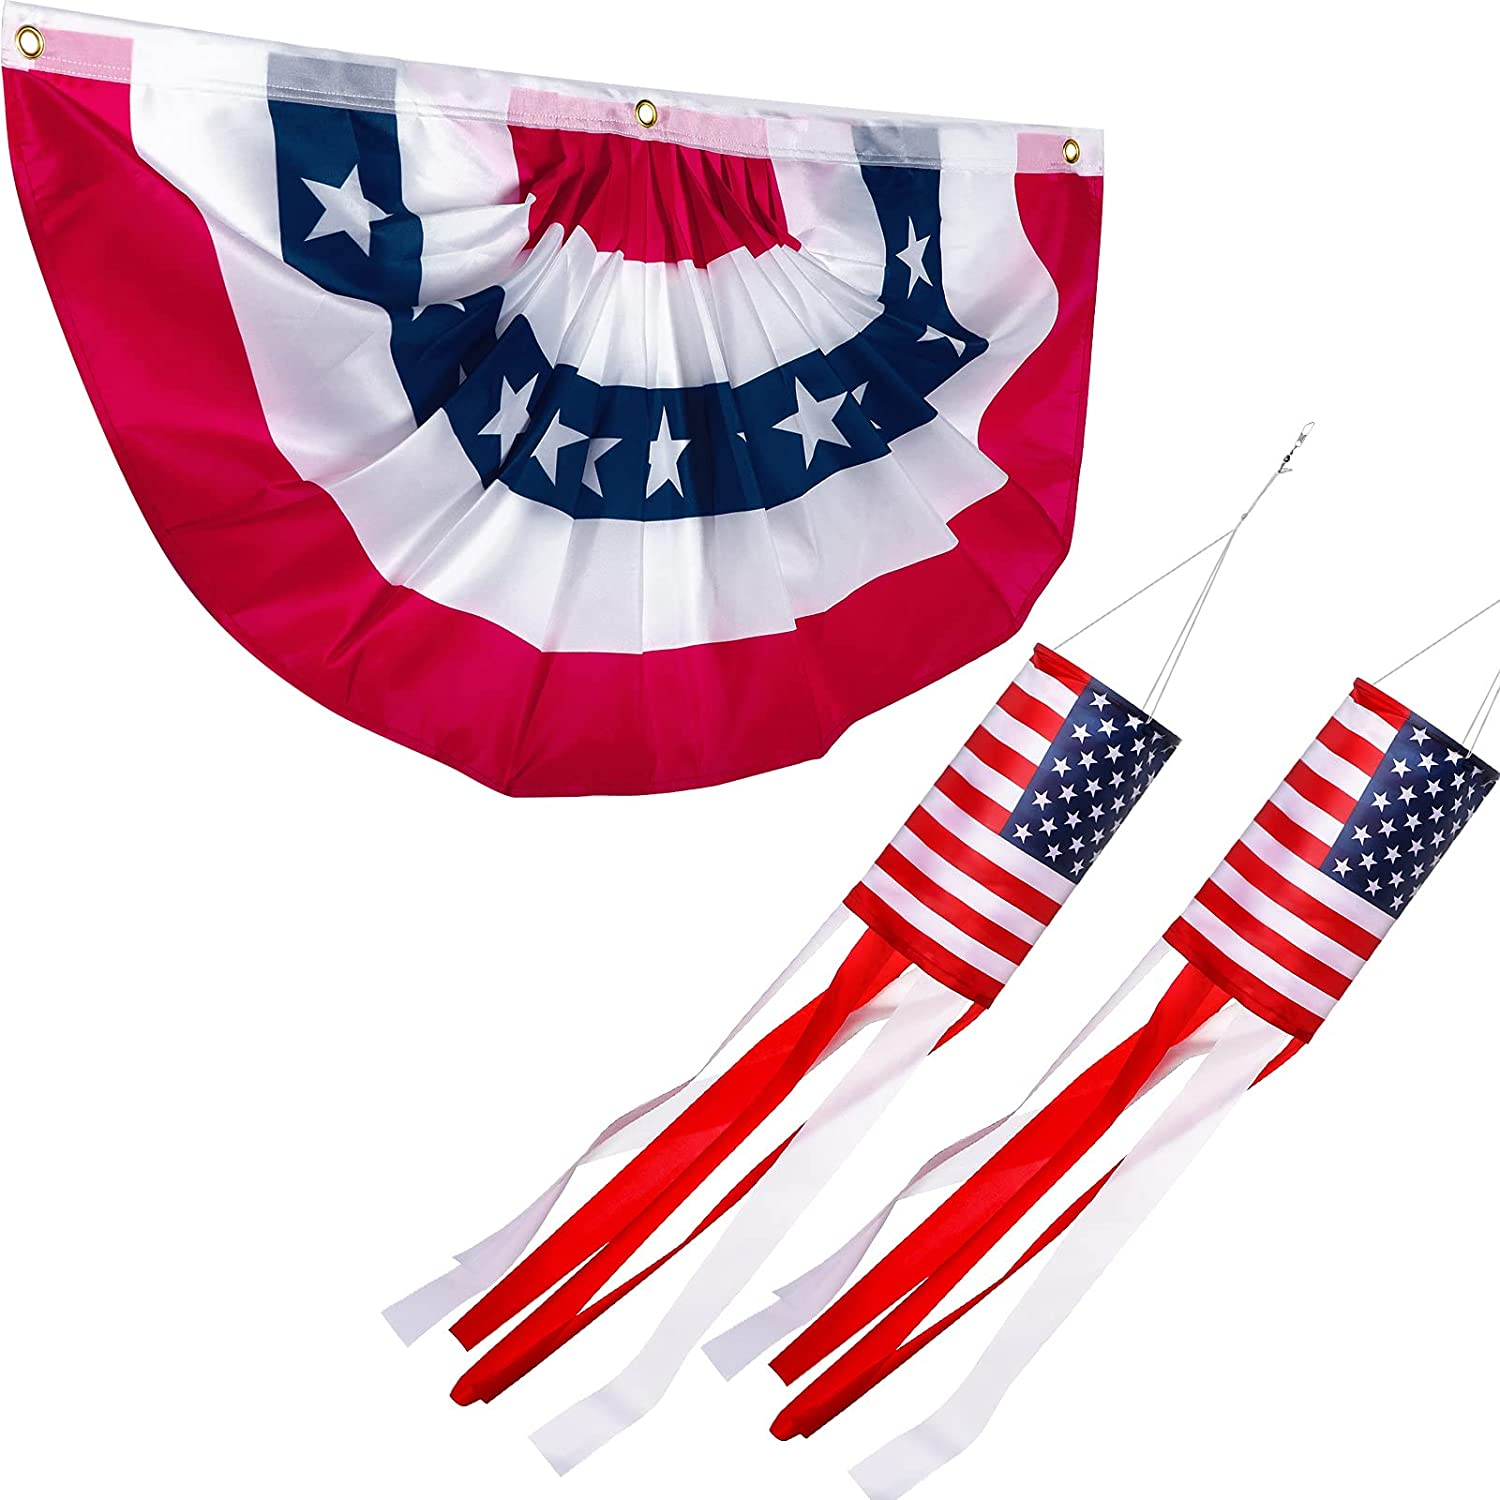 2 Pieces 4th of July Inch 40 Inch American Flag Windsock 3 x 6 Feet American Pleated Fan Flag Patriotic Outdoor Decorations Star and Stripe Patriotic Pleated Bunting for Independence Day Memorial Day